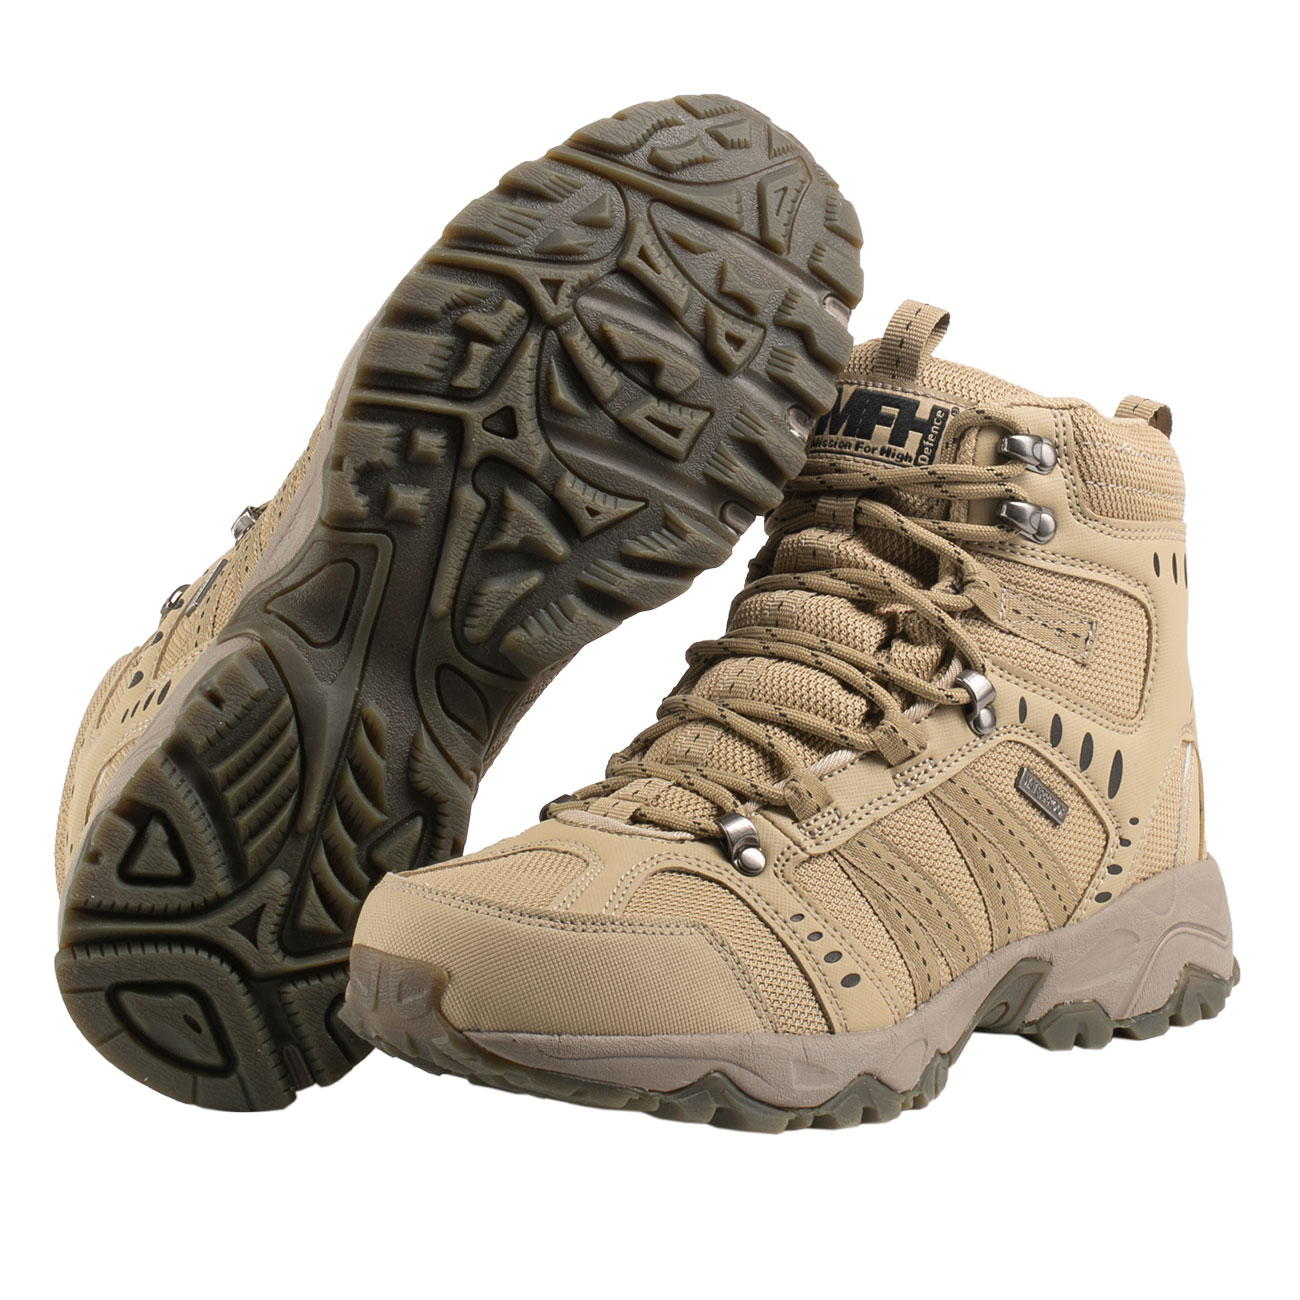 MFH Einsatzstiefel Tactical coyote tan 2